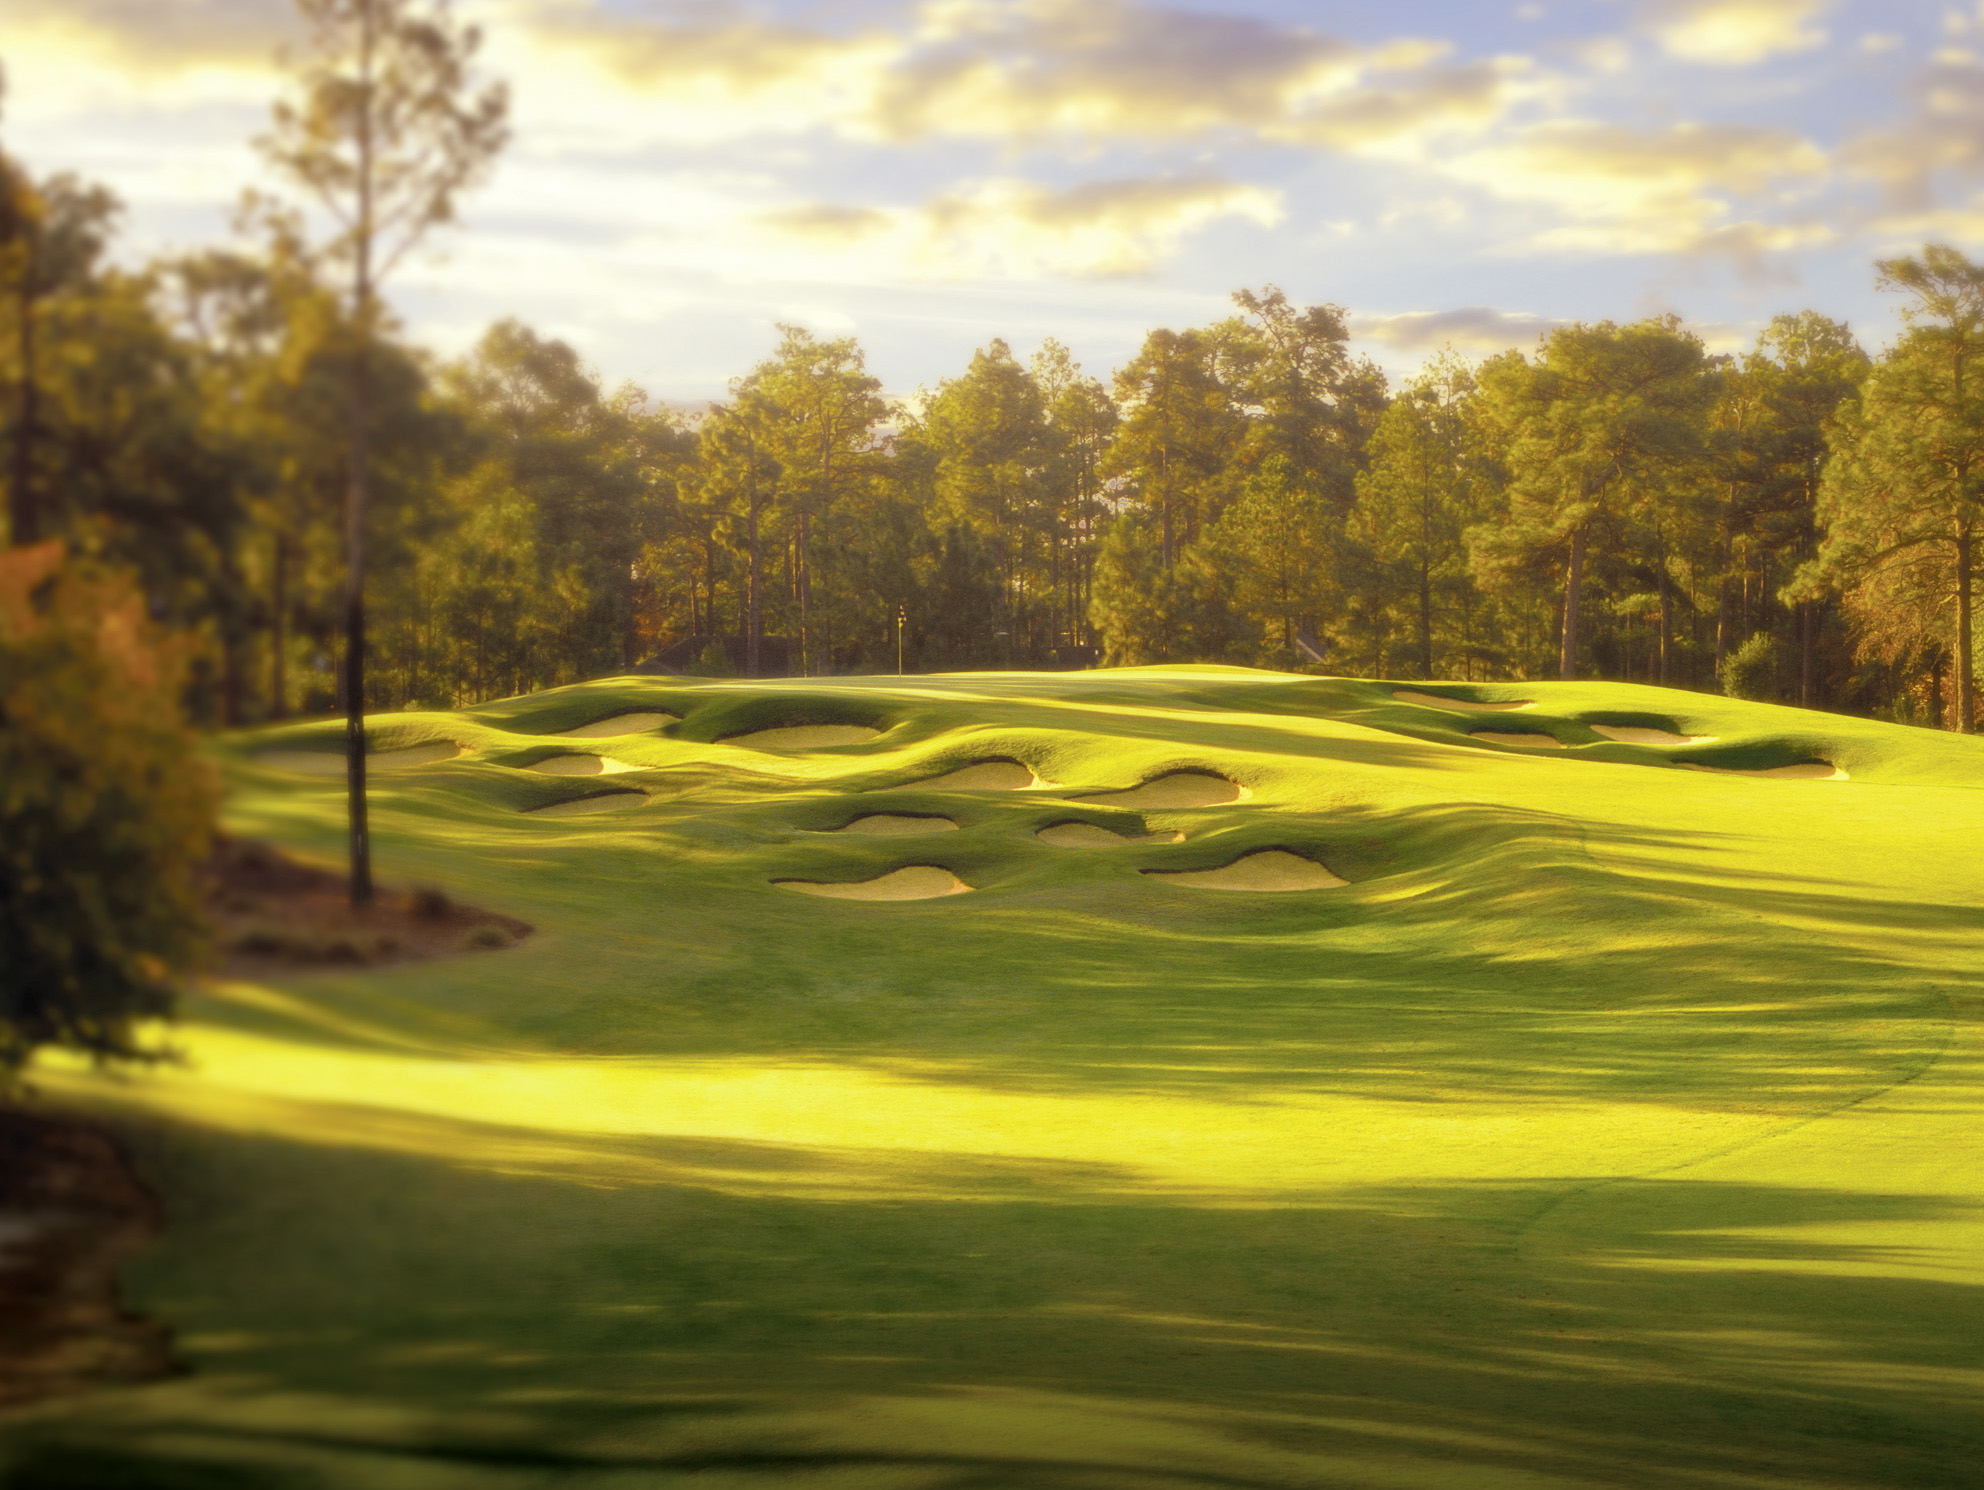 Tom Fazio remodelled Pinehurst's No.4 course, which was previously a combination of many different designers' work.